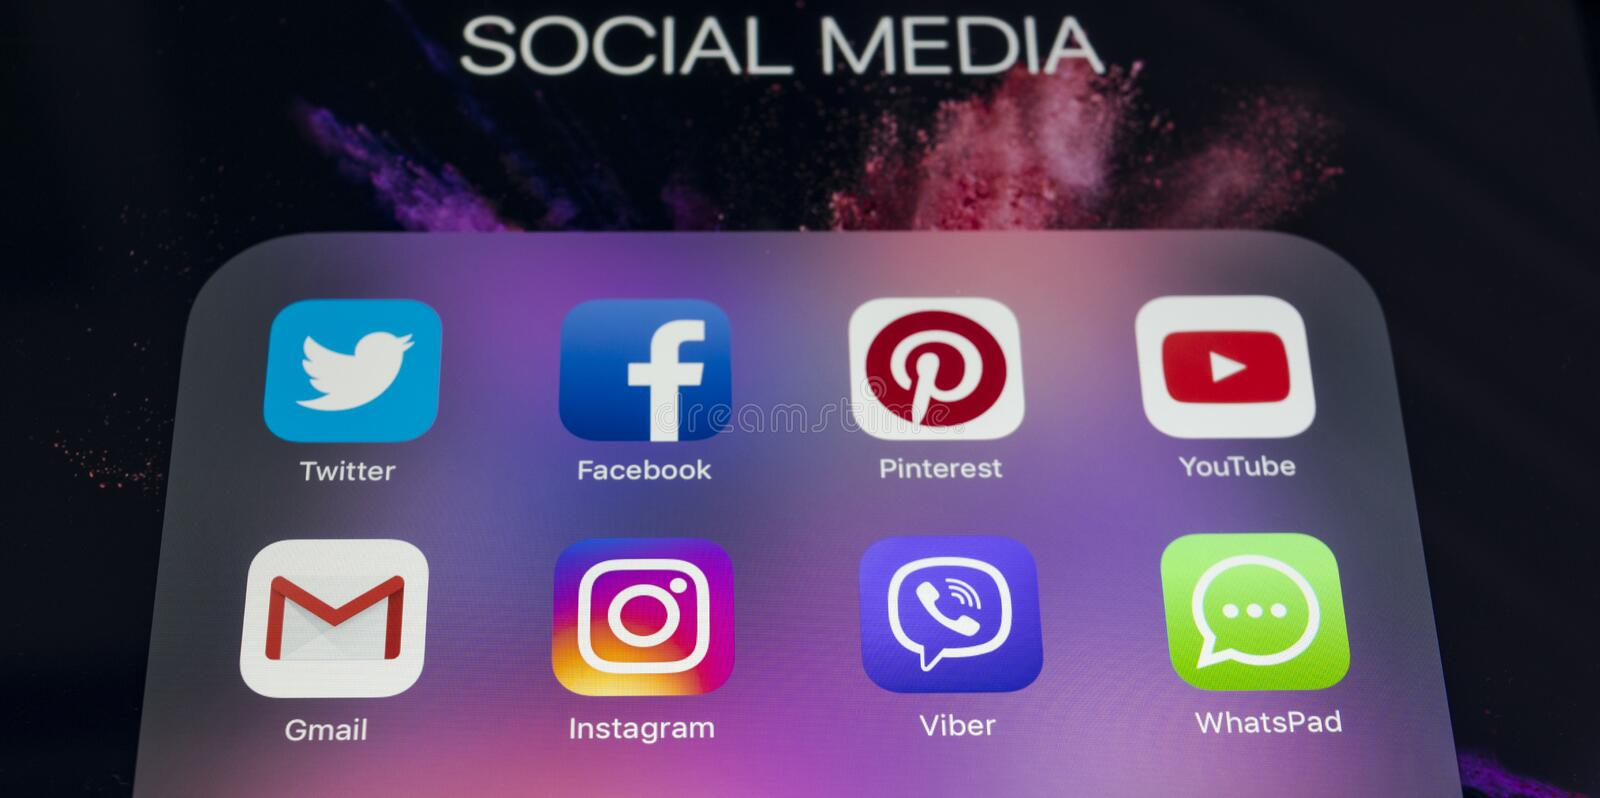 Apple iPad Pro with icons of social media facebook, instagram, twitter, snapchat application on screen. Tablet Starting social. Sankt-Petersburg Russia Novembe21 stock image